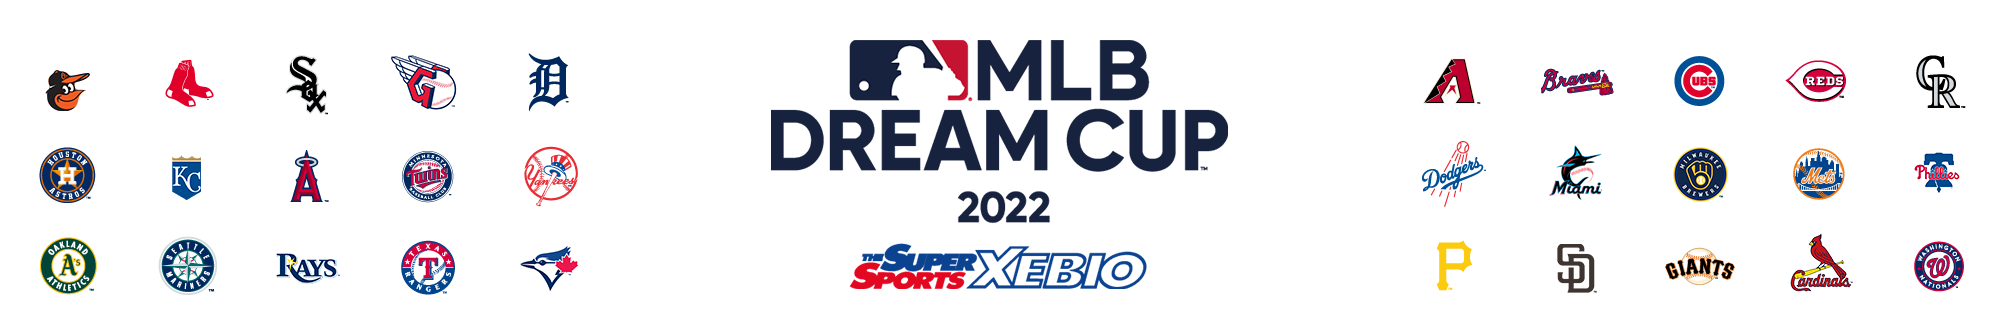 MLB DREAMCUP supported by XEBIO Group